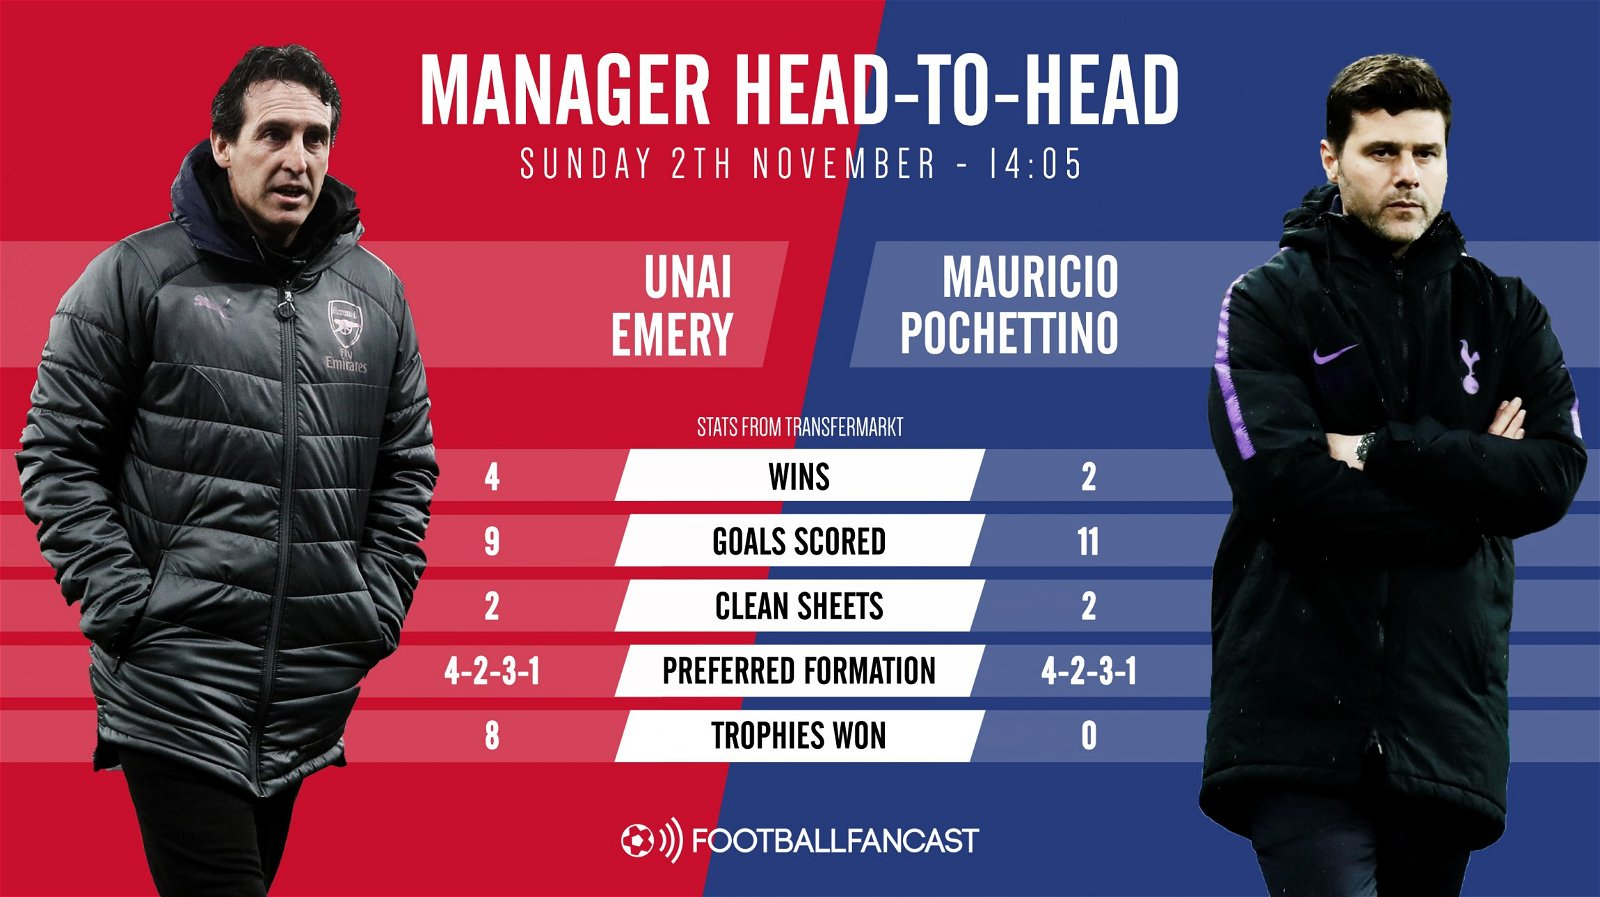 Head to Head - Unai Emery vs Mauricio Pochettino